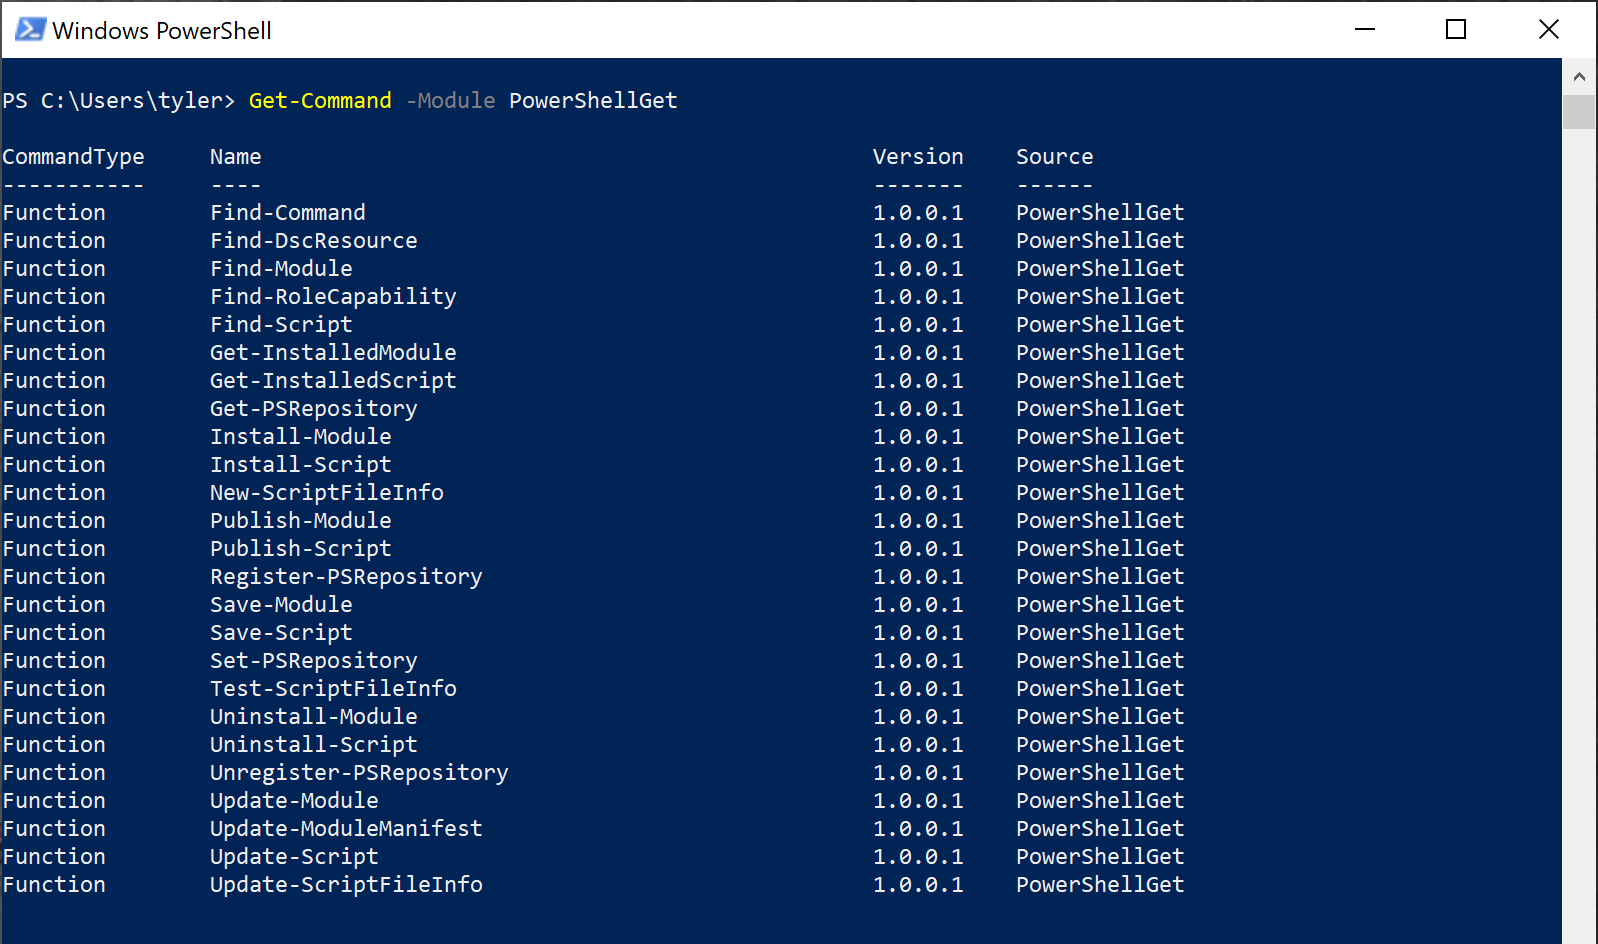 Commands in the PowerShellGet module